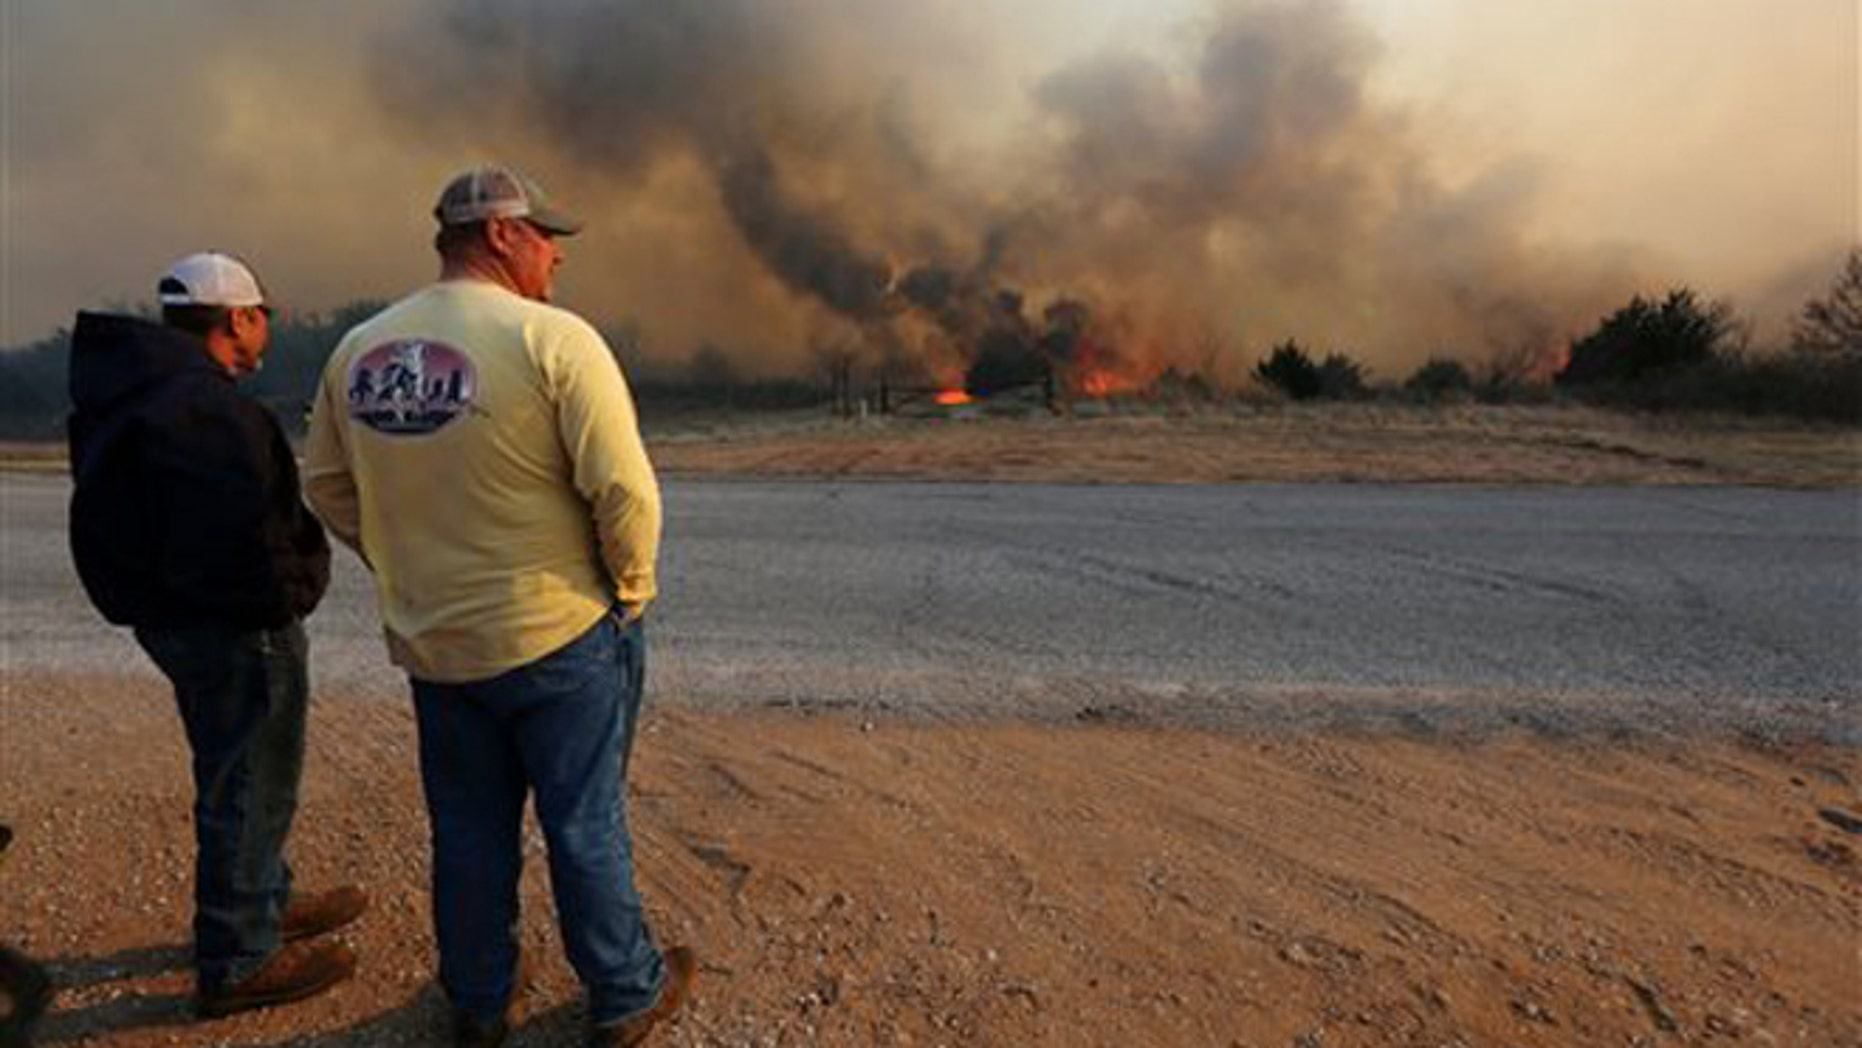 Jeff Clark and Roger Van Rankin watch the fire east of Lake City, Kan., Wednesday, March 23, 2016. The two were watching to see if the fire would jump the road onto Clark's ground.